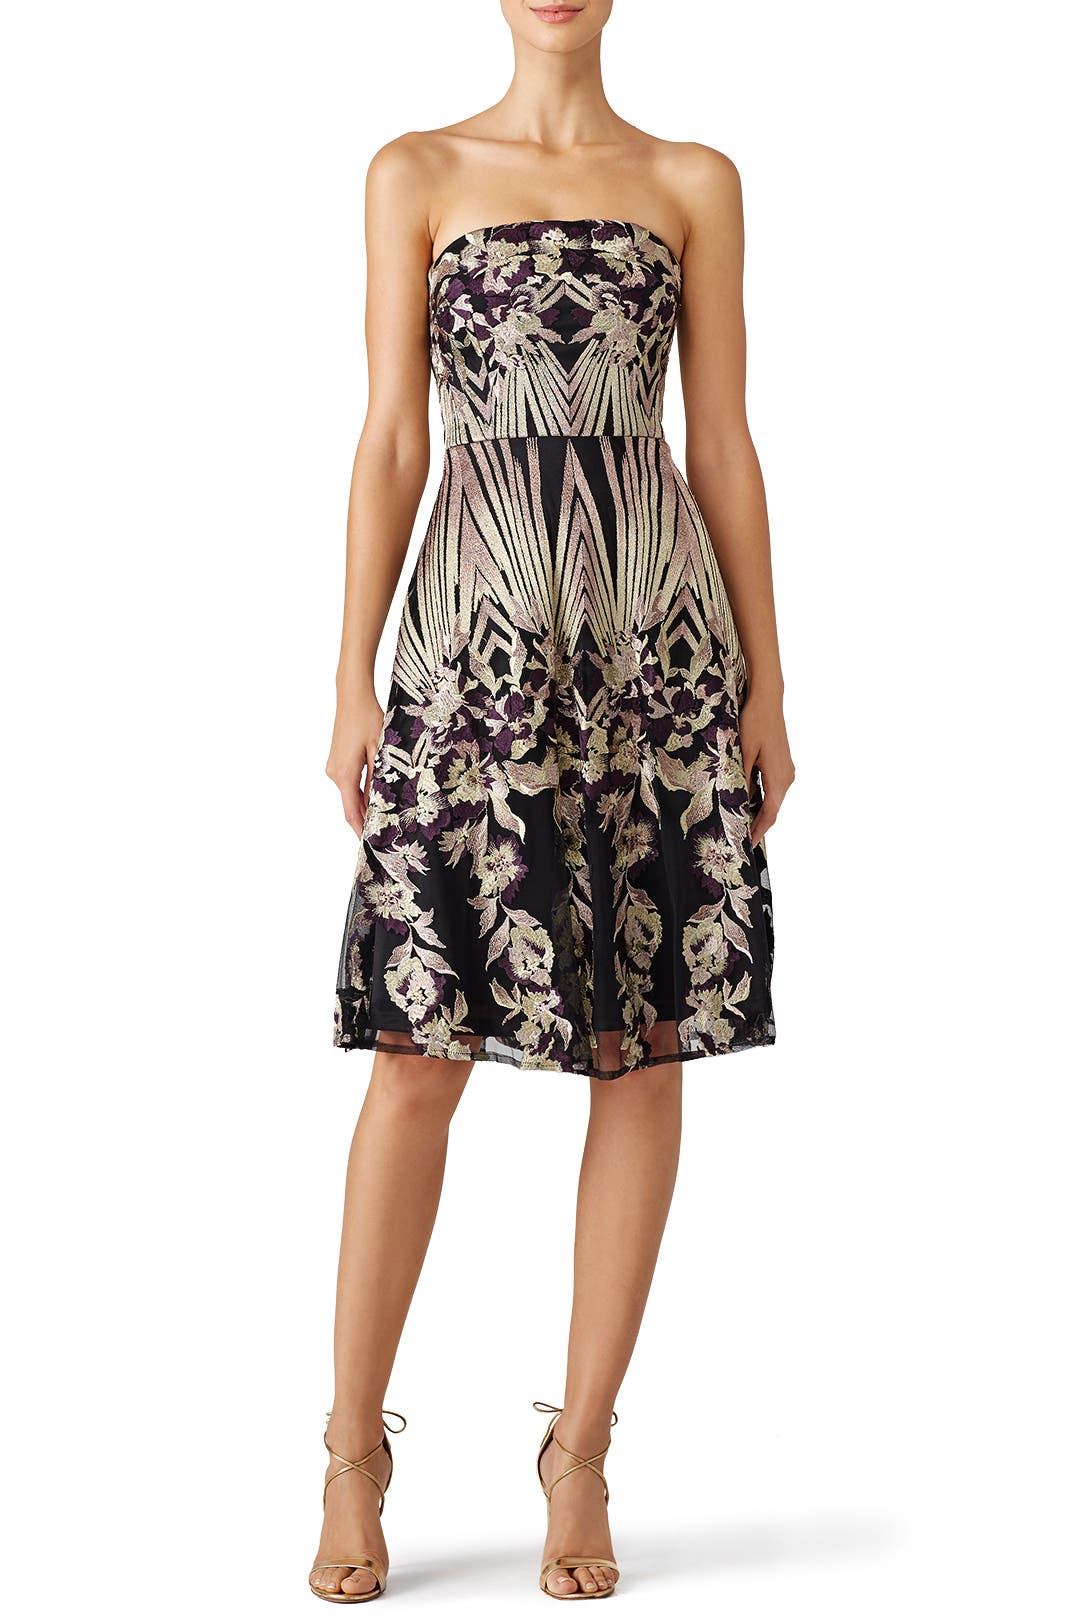 Dresses: Brand David Meister Great selection and prices for Wedding ...